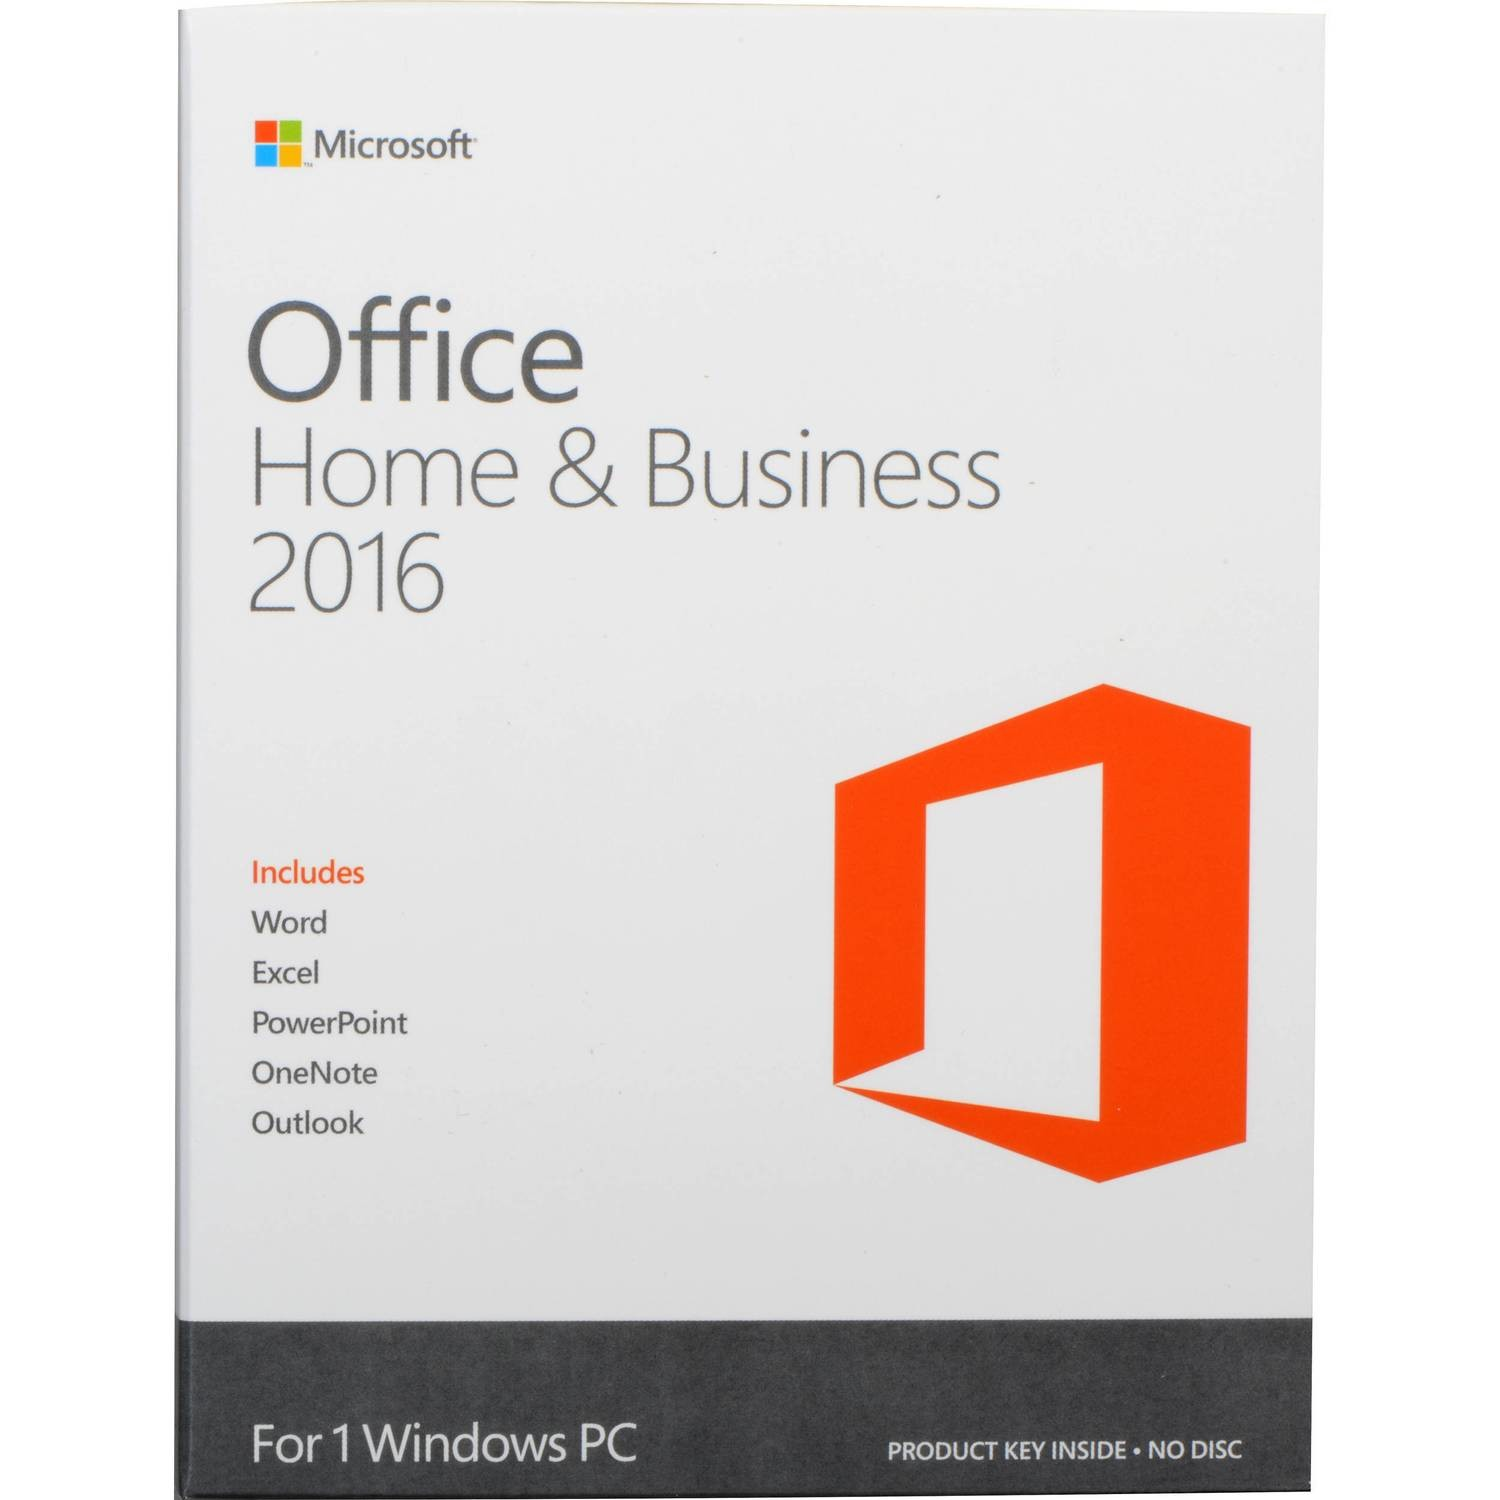 Microsoft Office Home & Business 2016 FPP